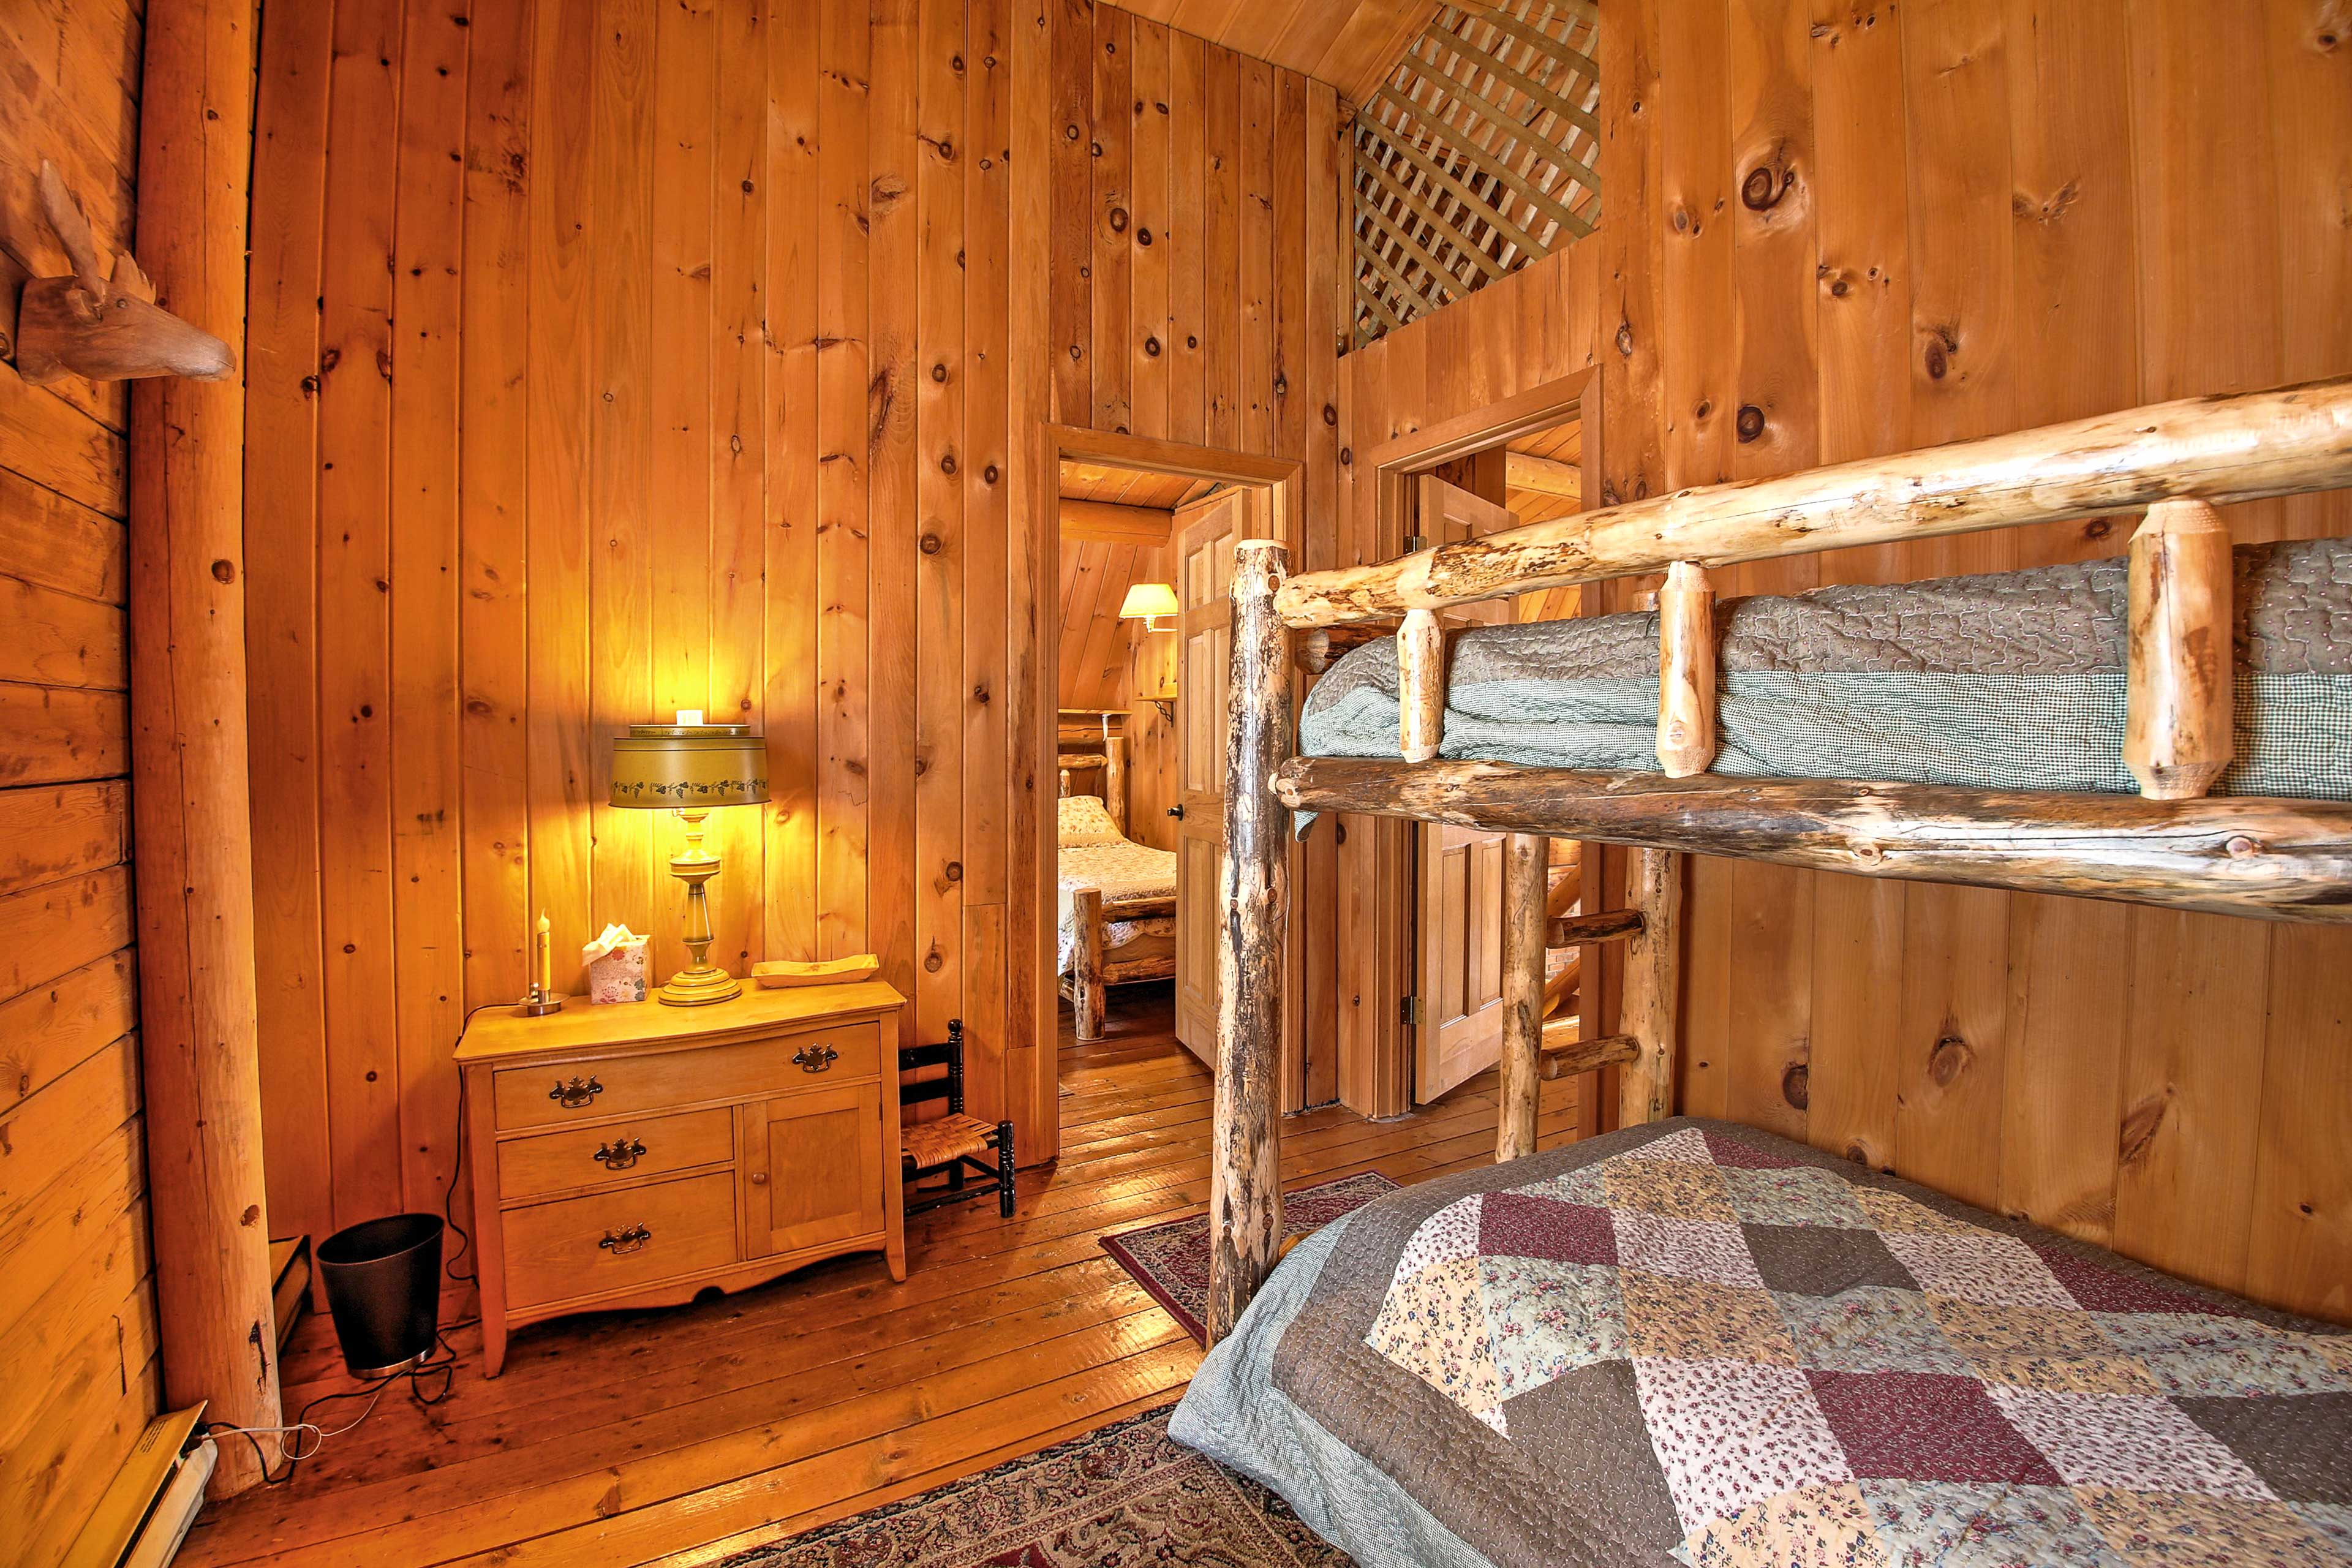 Fall in love with the knotty pine accents throughout the cabin.